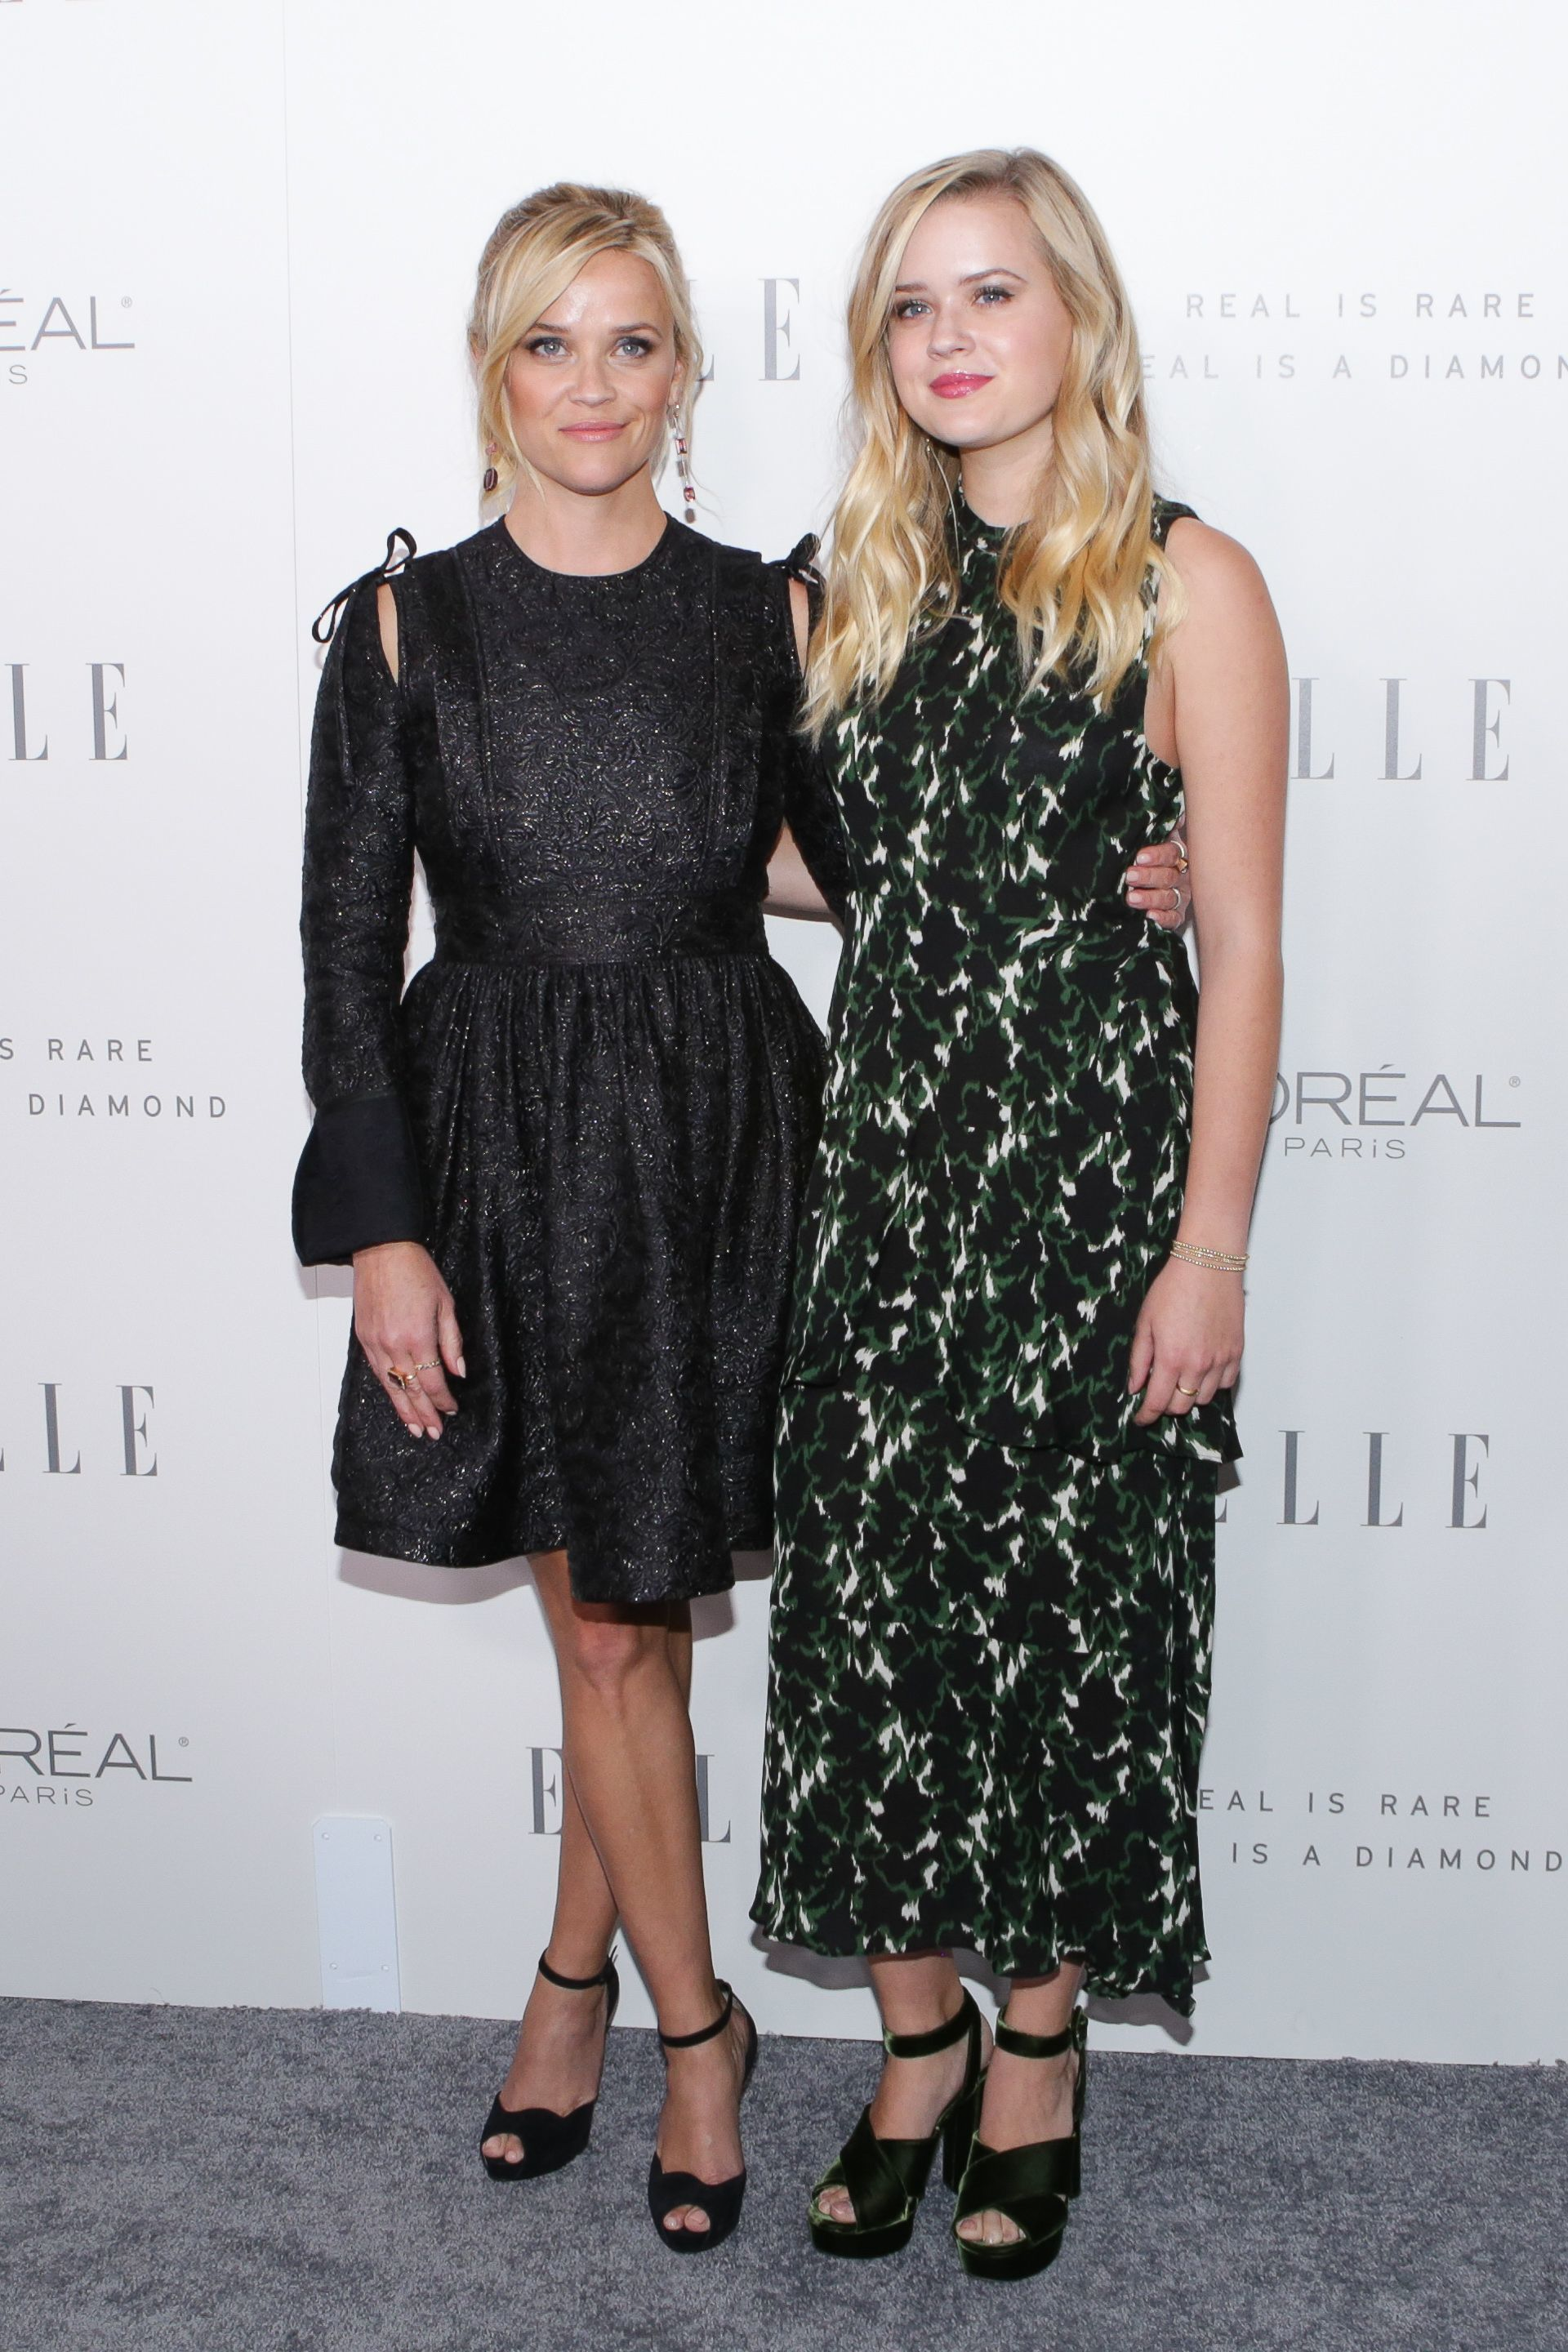 Reese Witherspoon and Ava Phillippe attend the Elle Women In Hollywood in Los Angeles on Oct. 16, 2017.